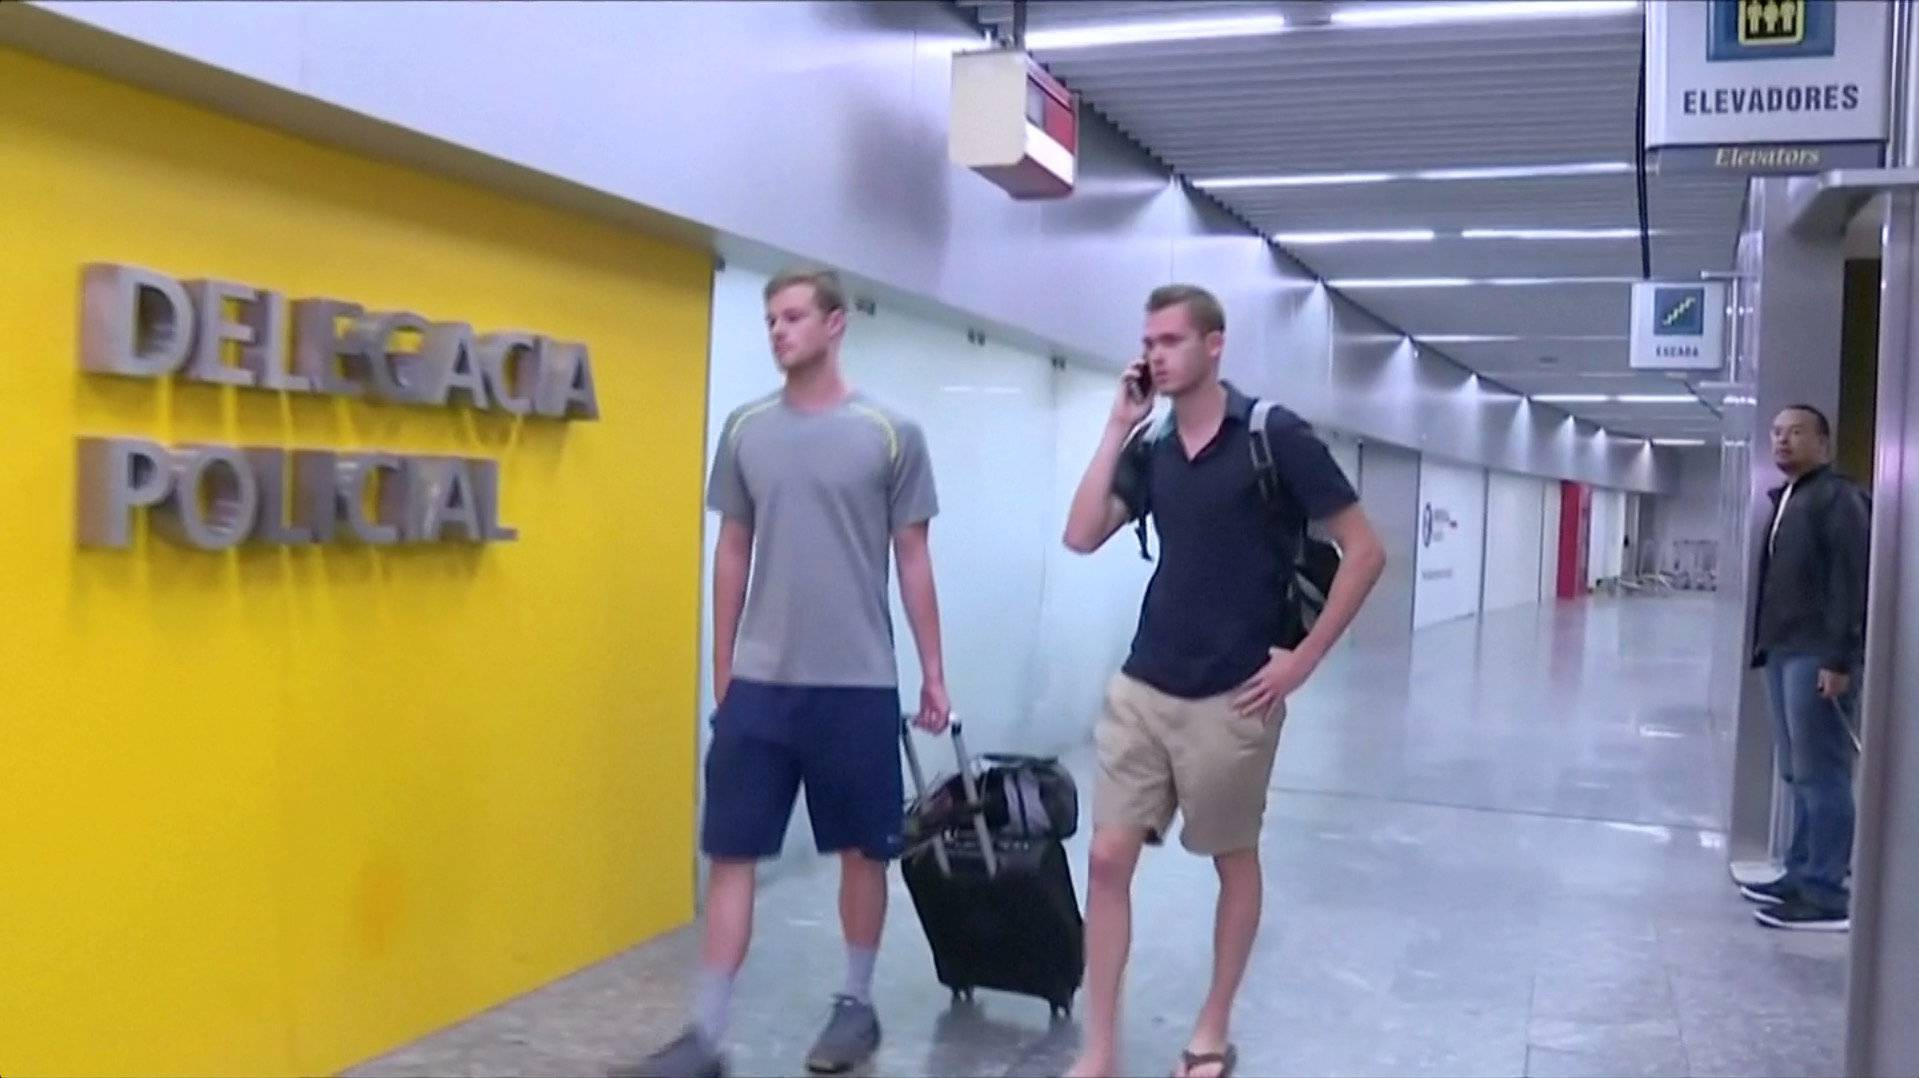 U.S. Olympic swimmers Gunnar Bentz and Jack Conger walk to the airport police station office at Rio's international airport in this still frame taken from video